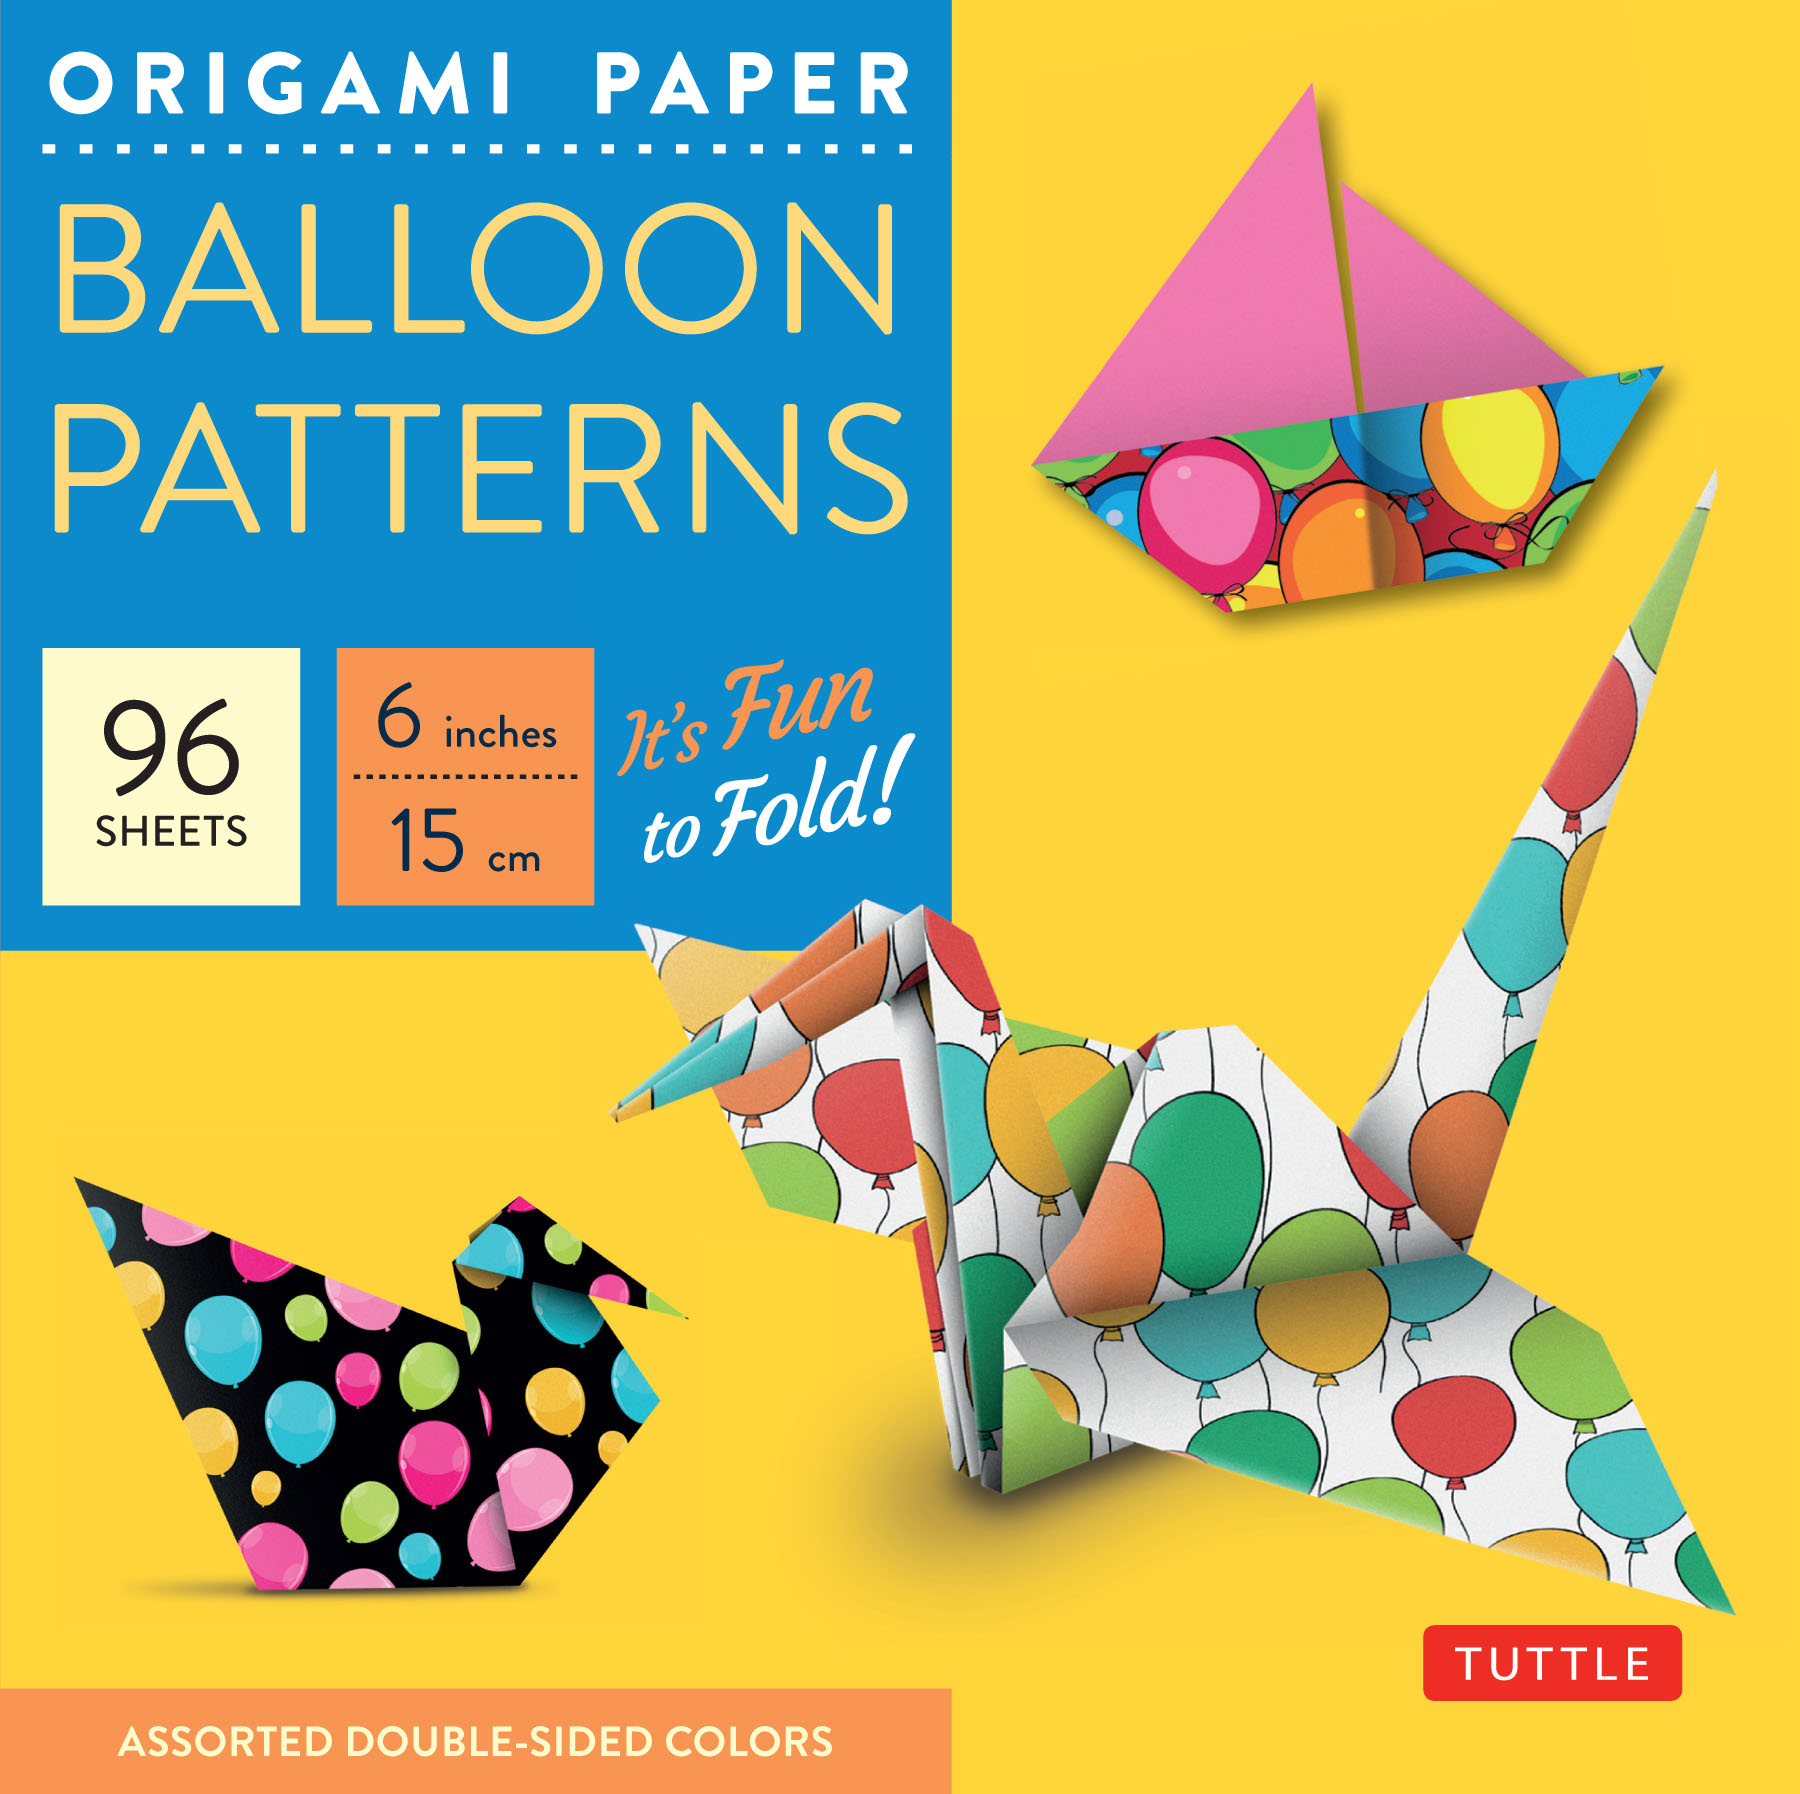 Origami Paper Balloon Patterns Newsouth Books